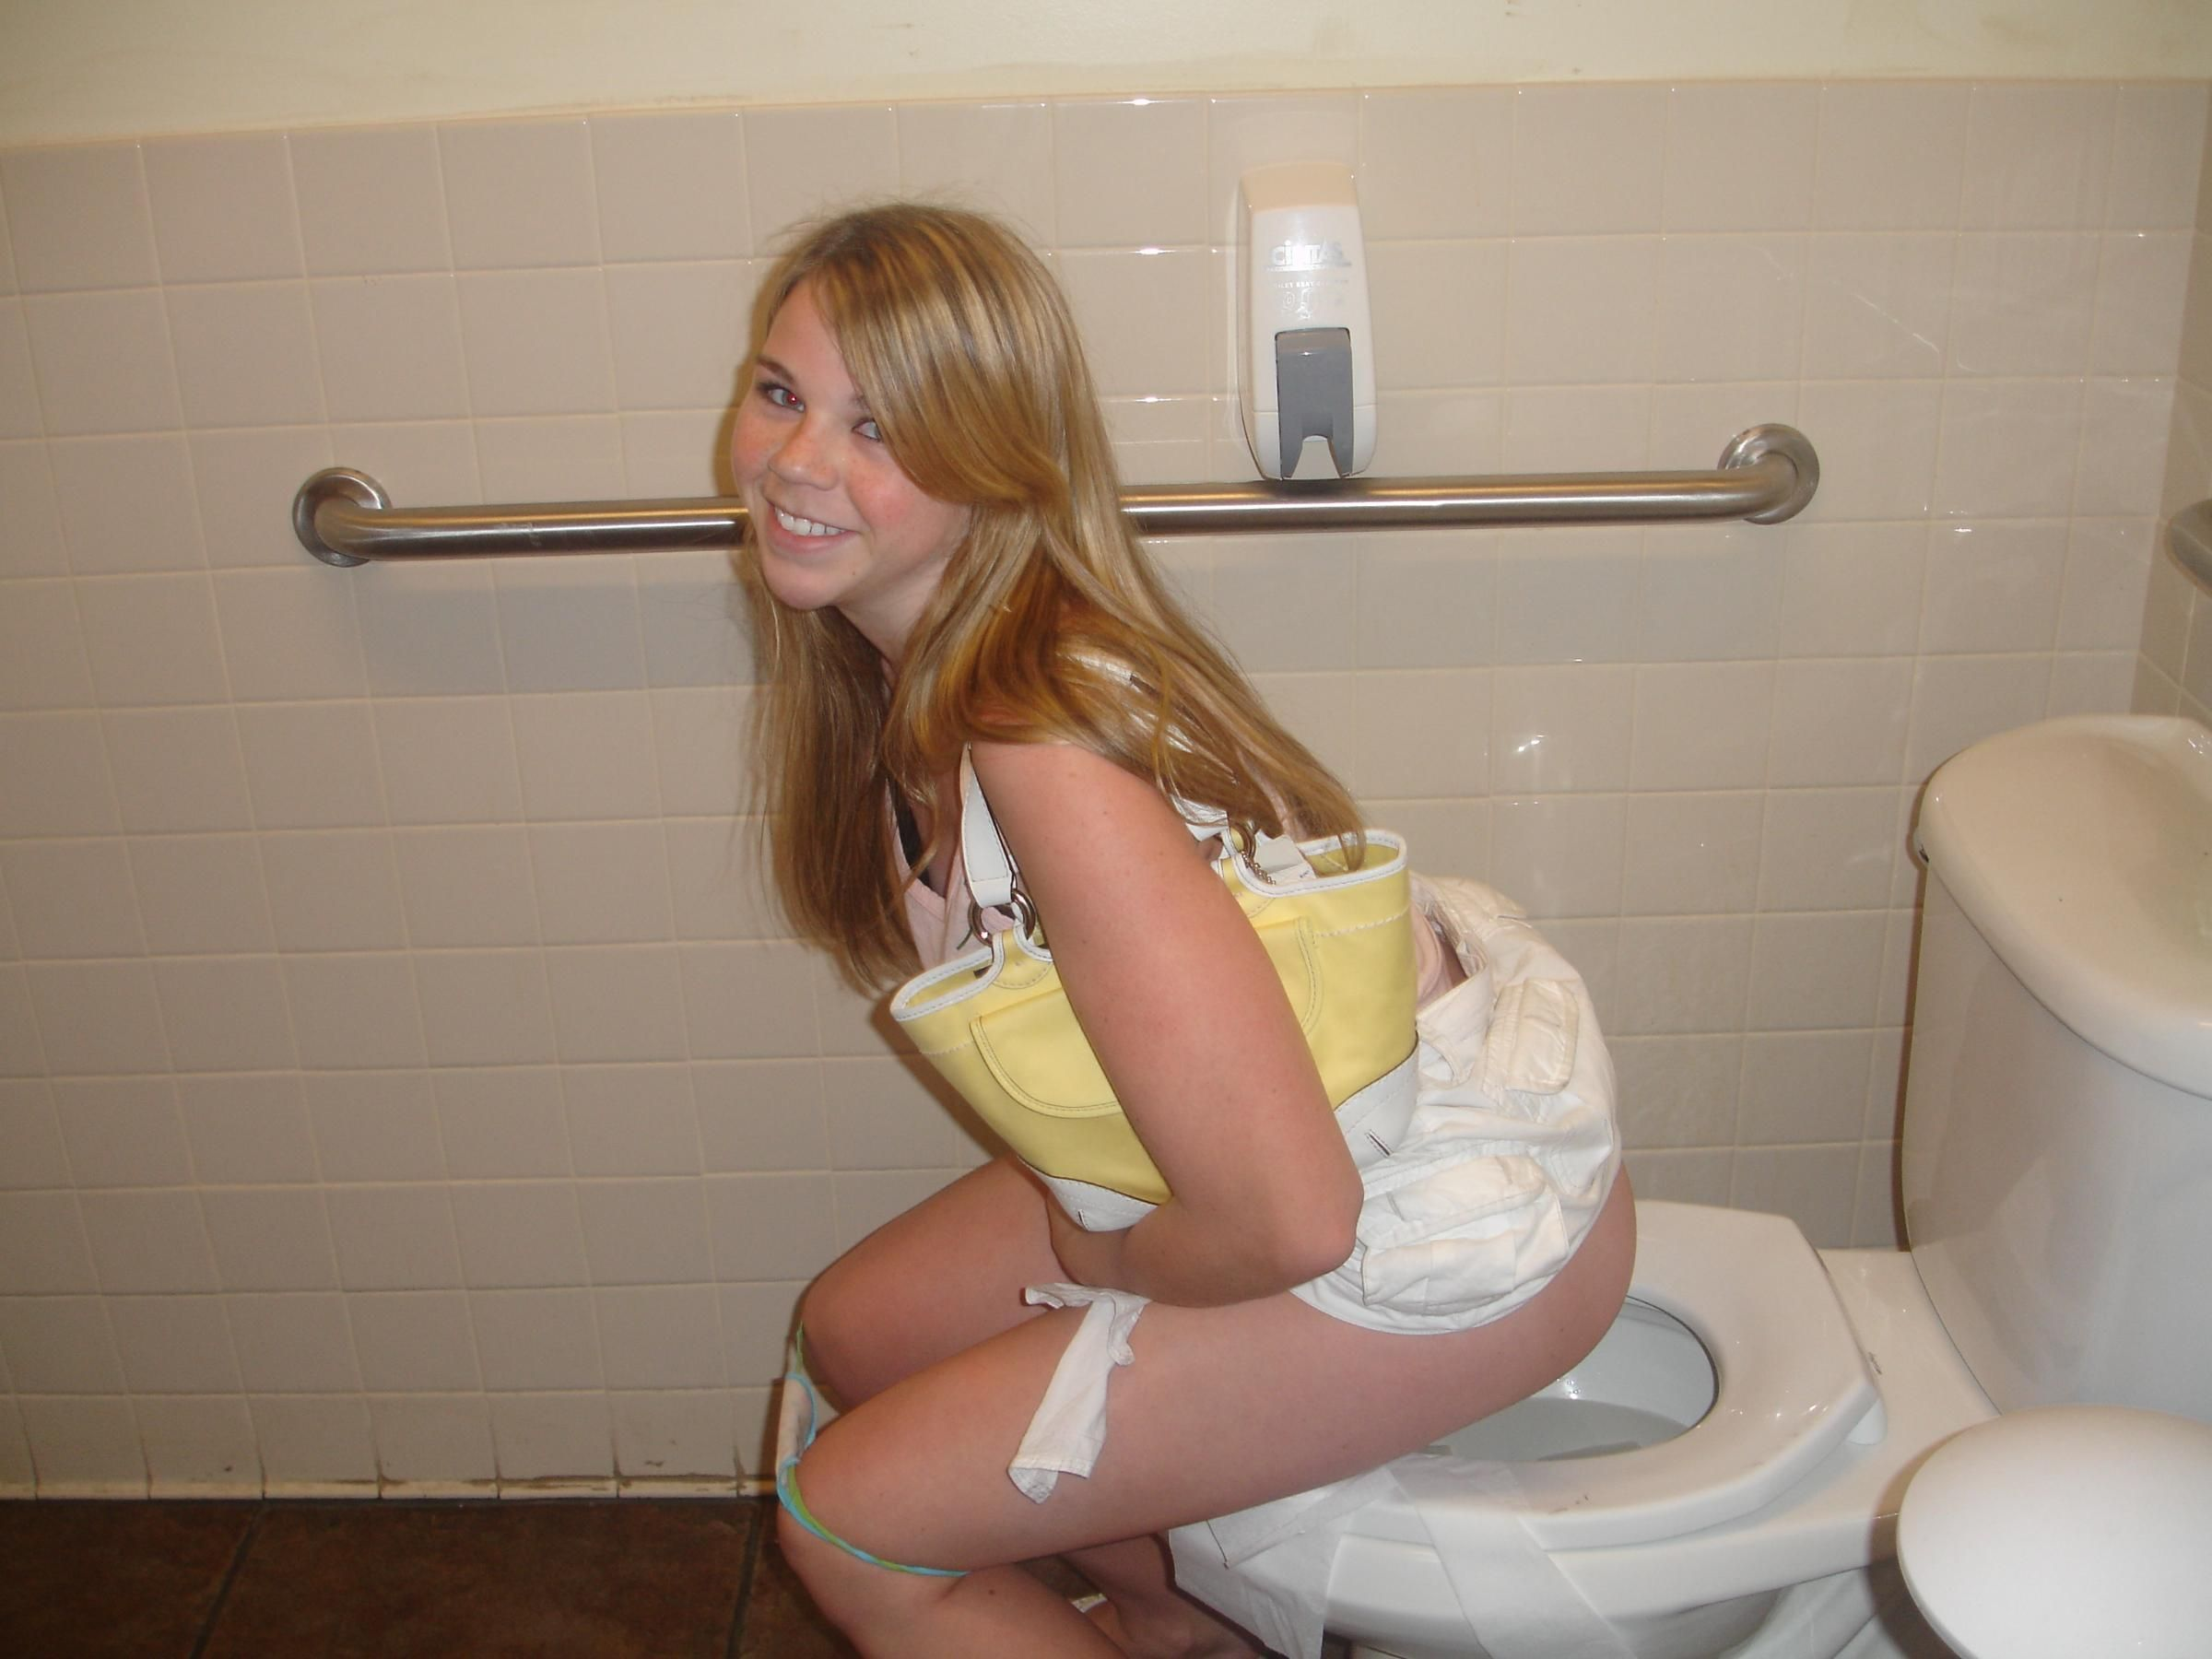 Dead R. reccomend Girls peeing over toilet